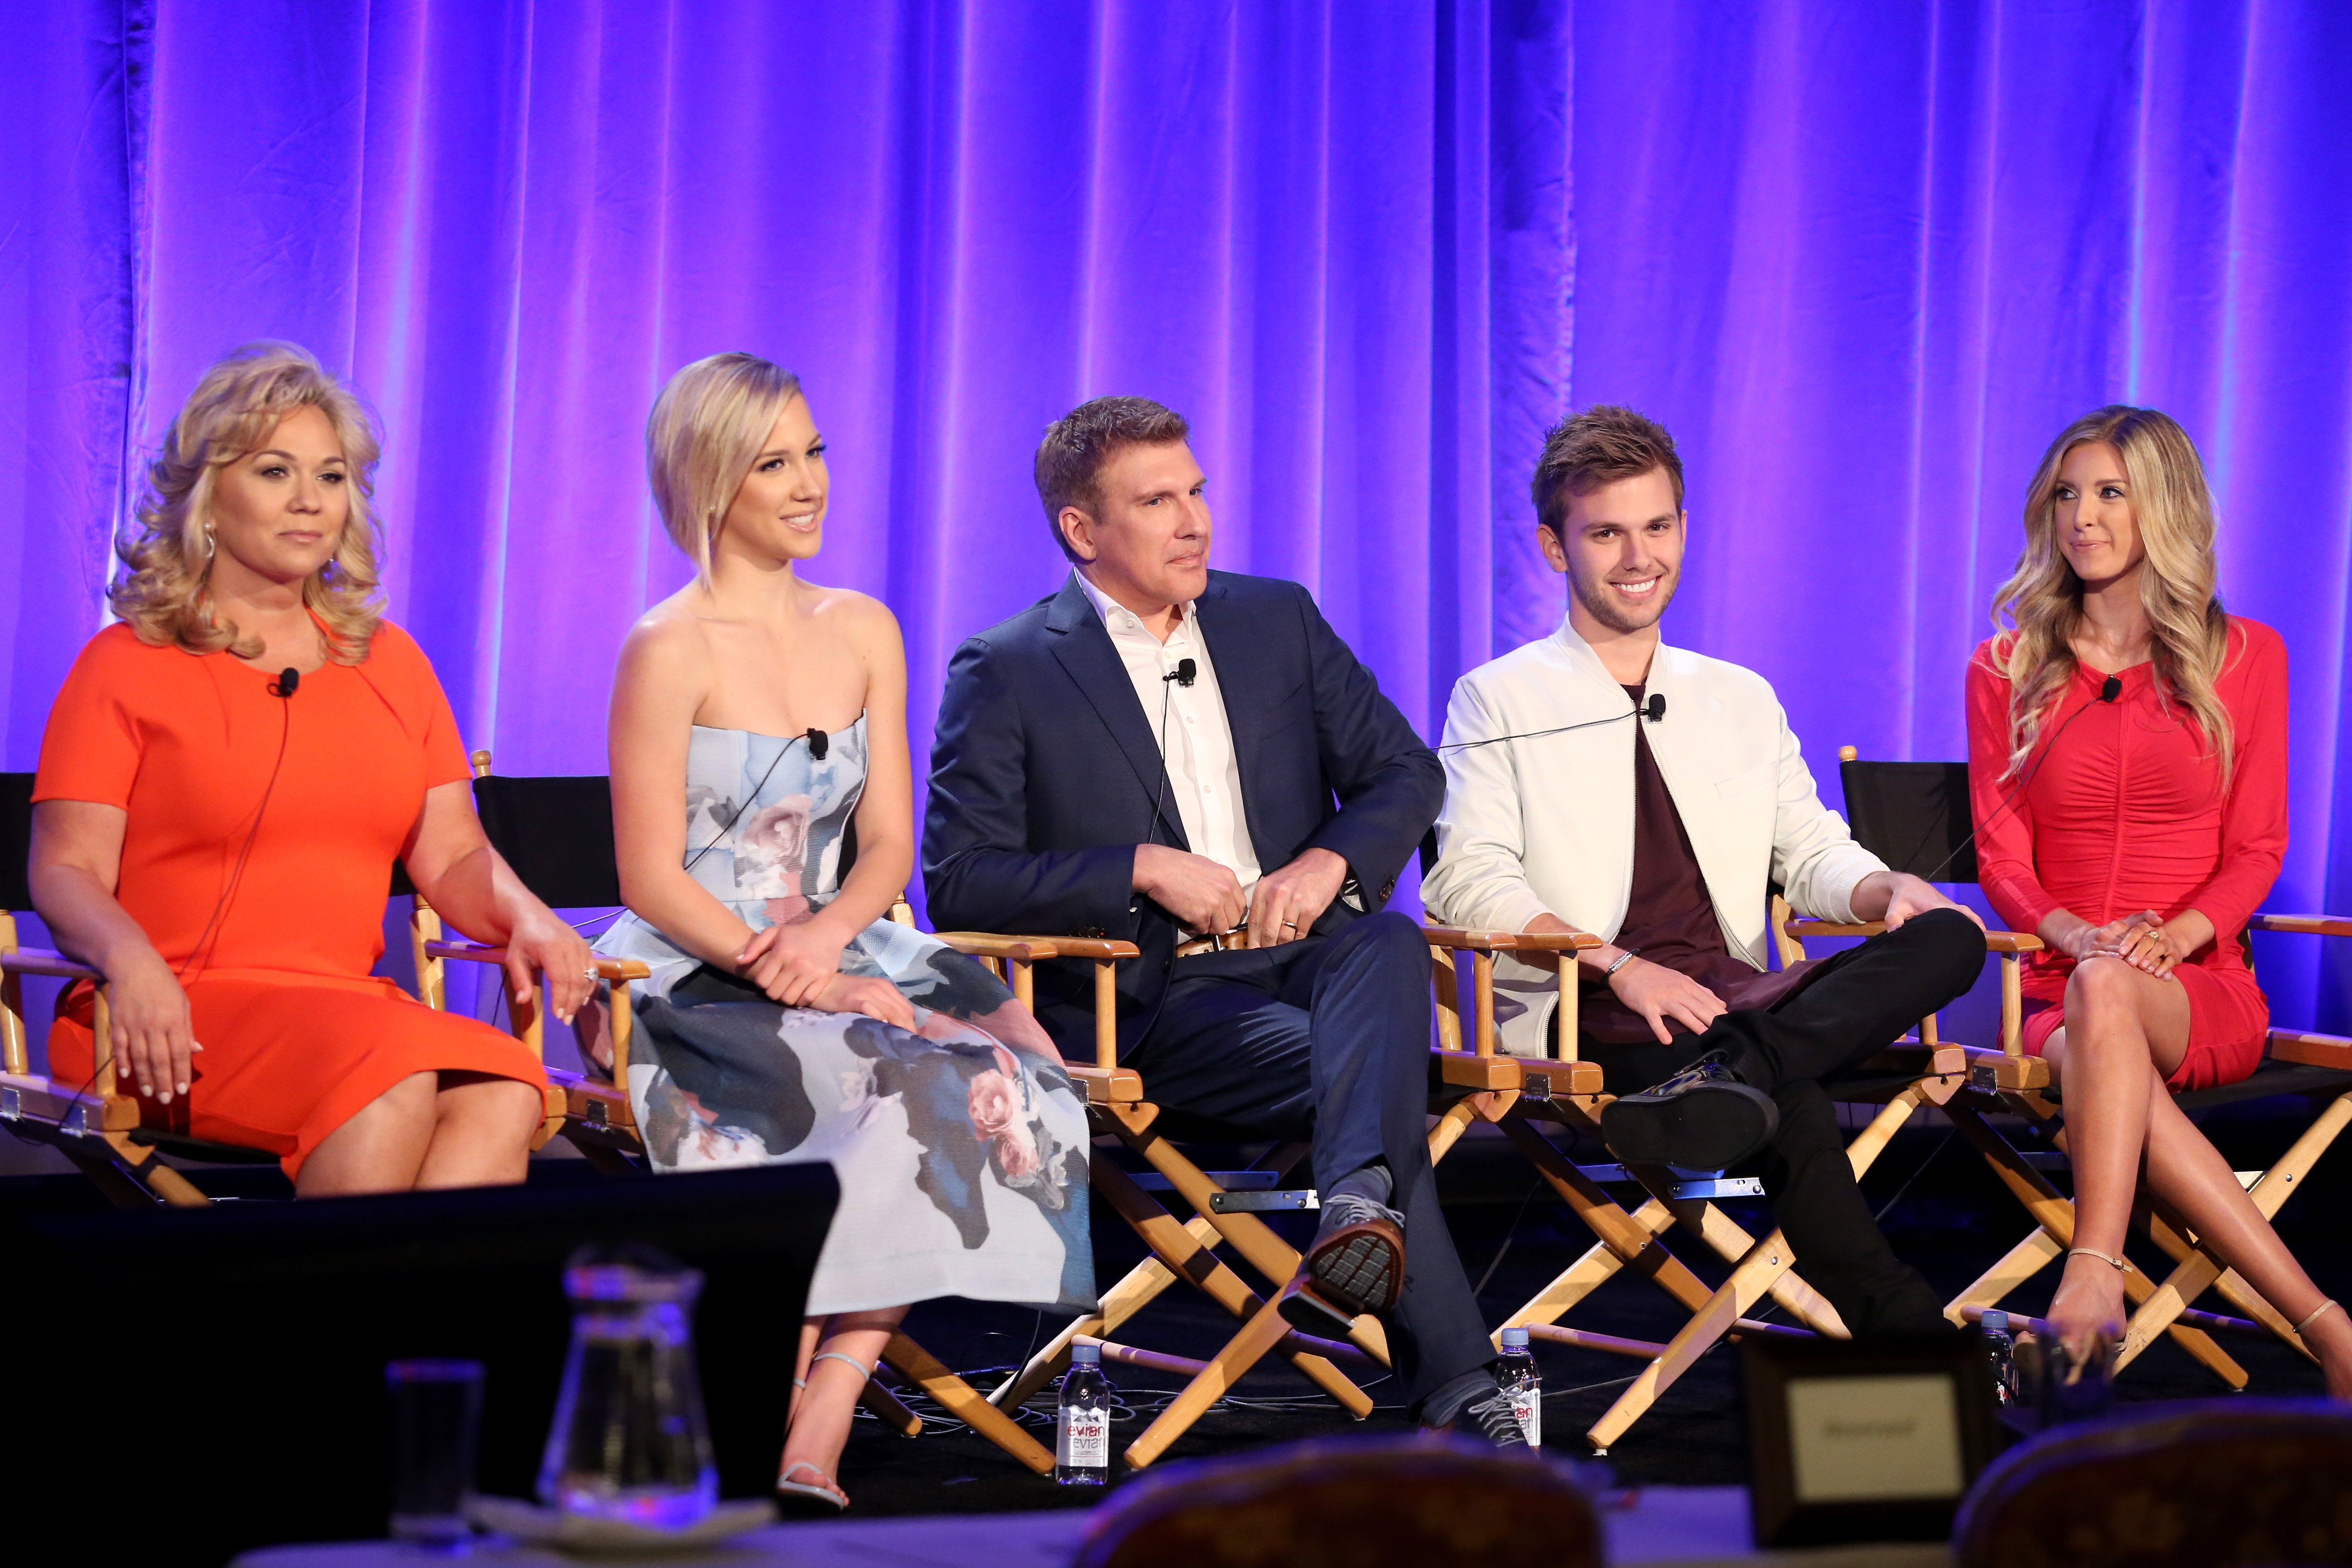 TV personalities Julie, Savannah, Todd, Chase, and Lindsie Chrisley during the 'Chrisley Knows Best' panel at the 2016 NBCUniversal Summer Press Day on April 1, 2016 in Westlake Village, California.   Source: Getty Images